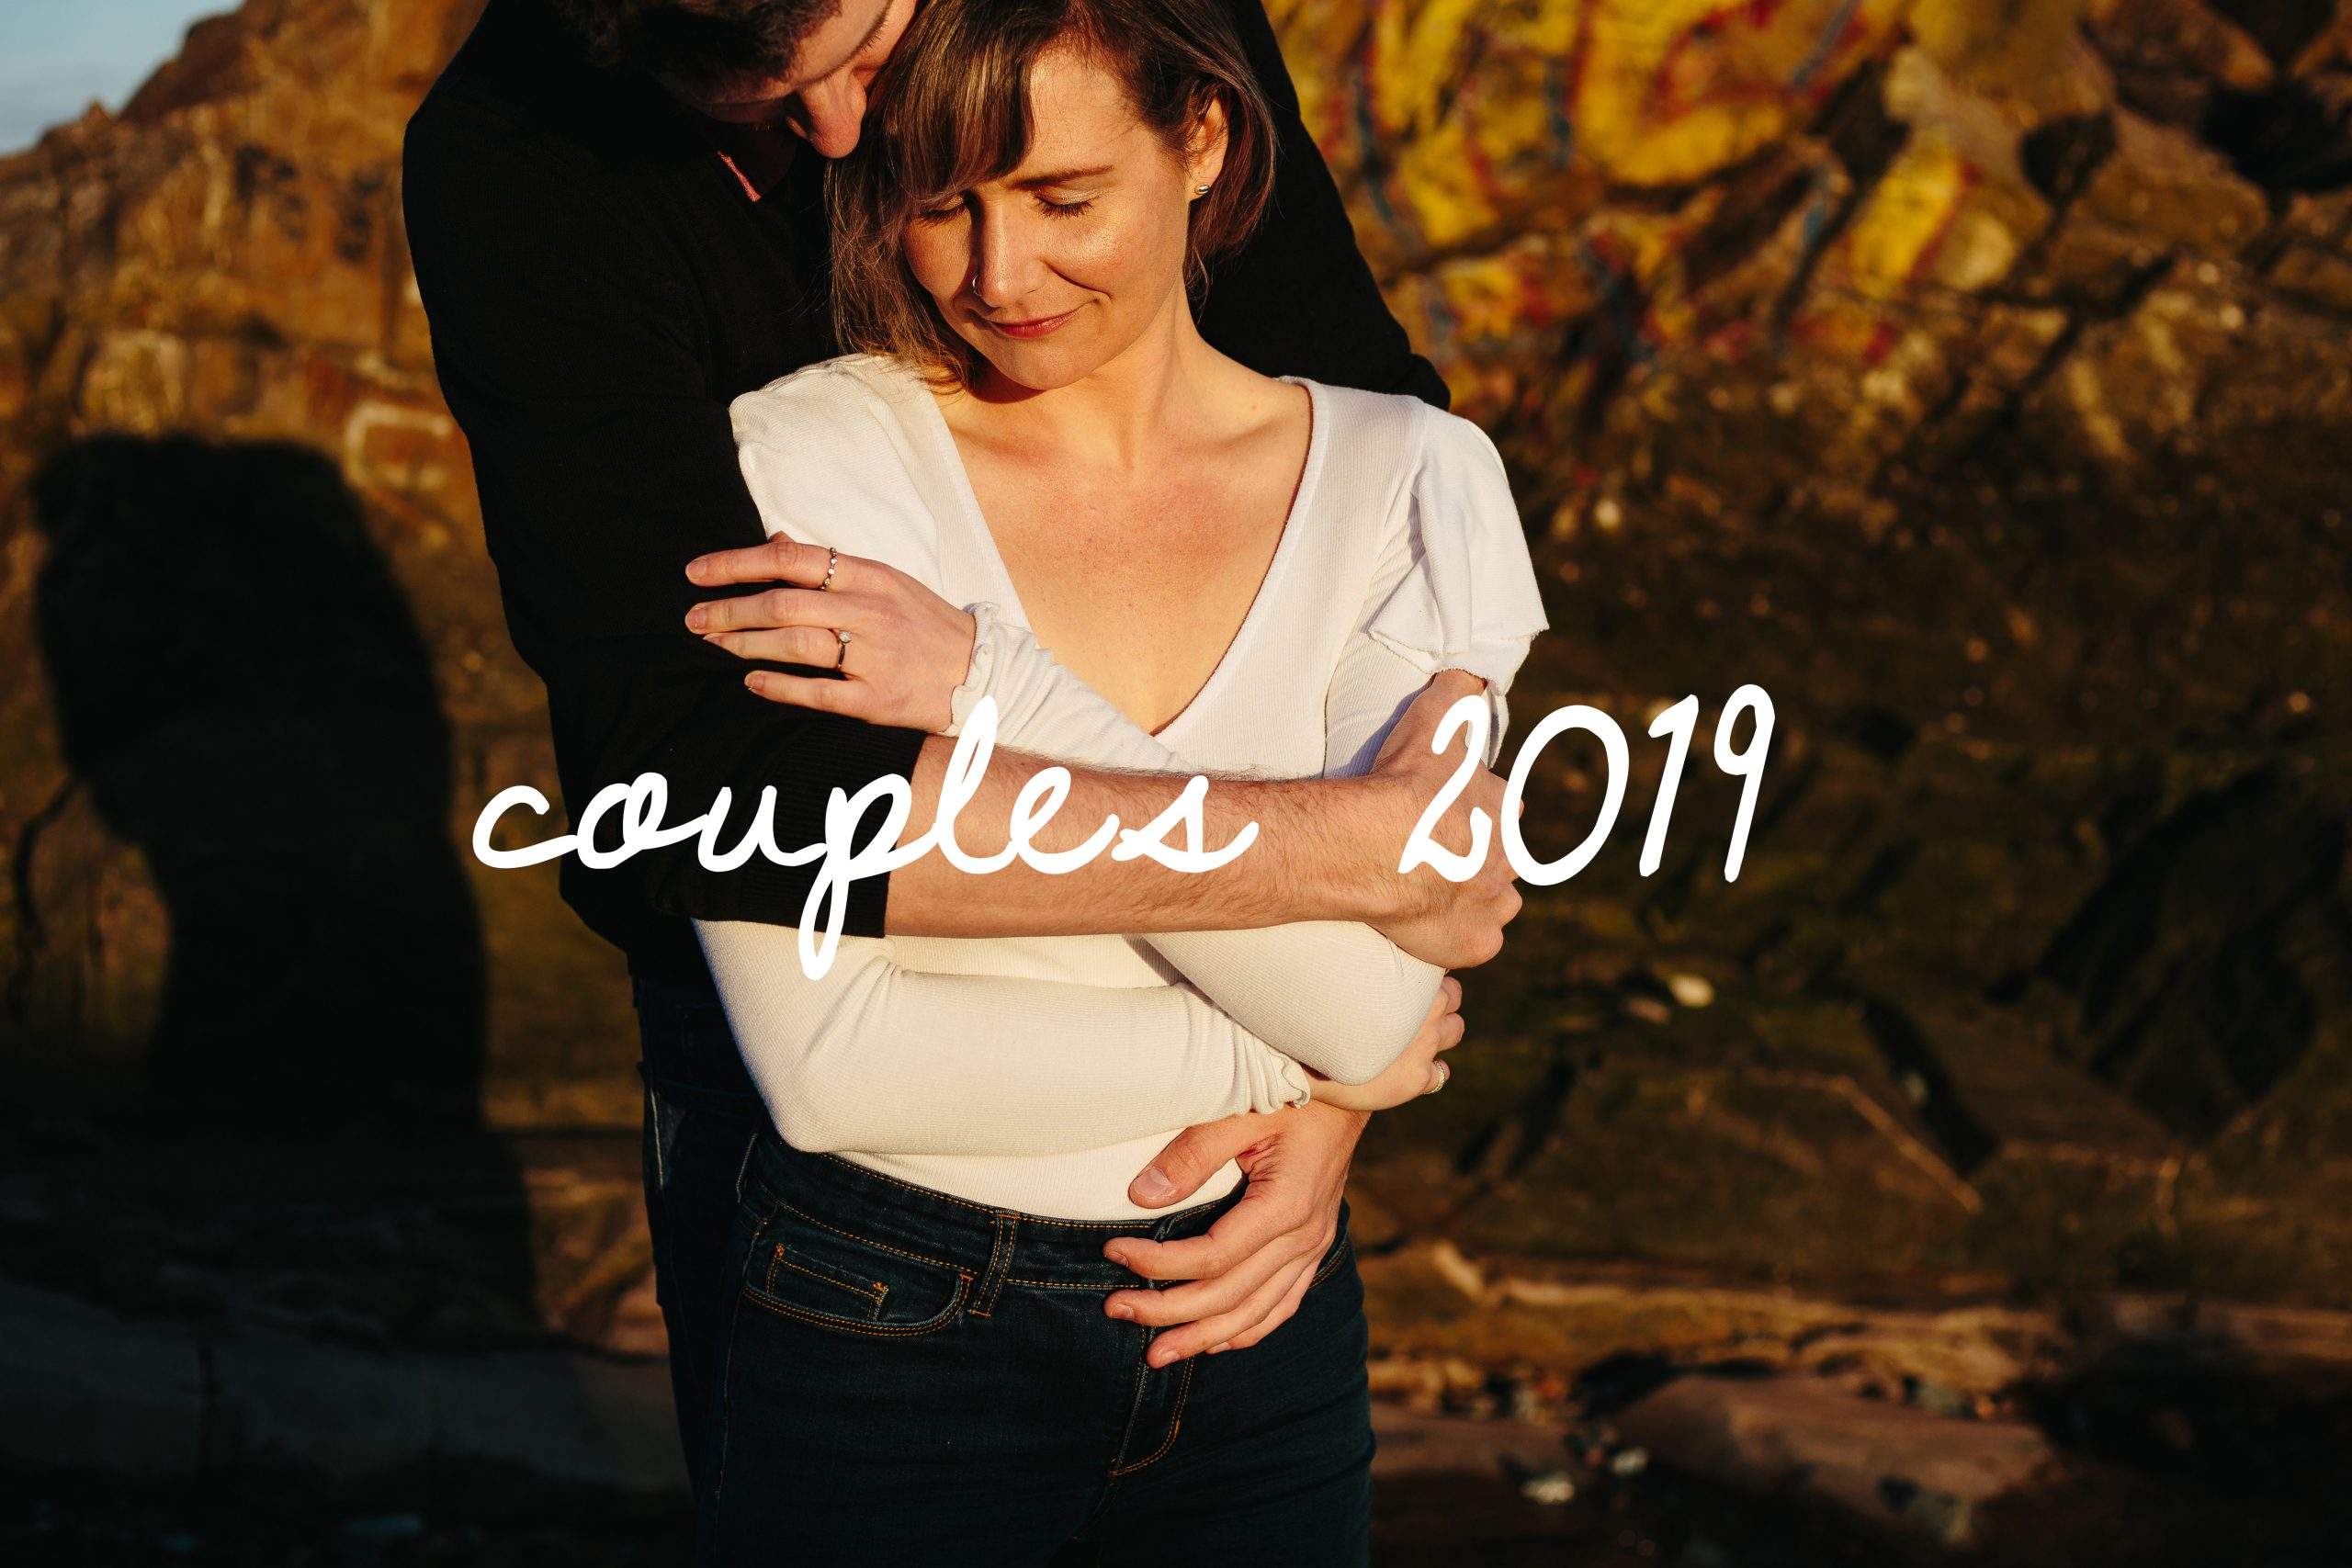 Best of 2019-Couples (single images)